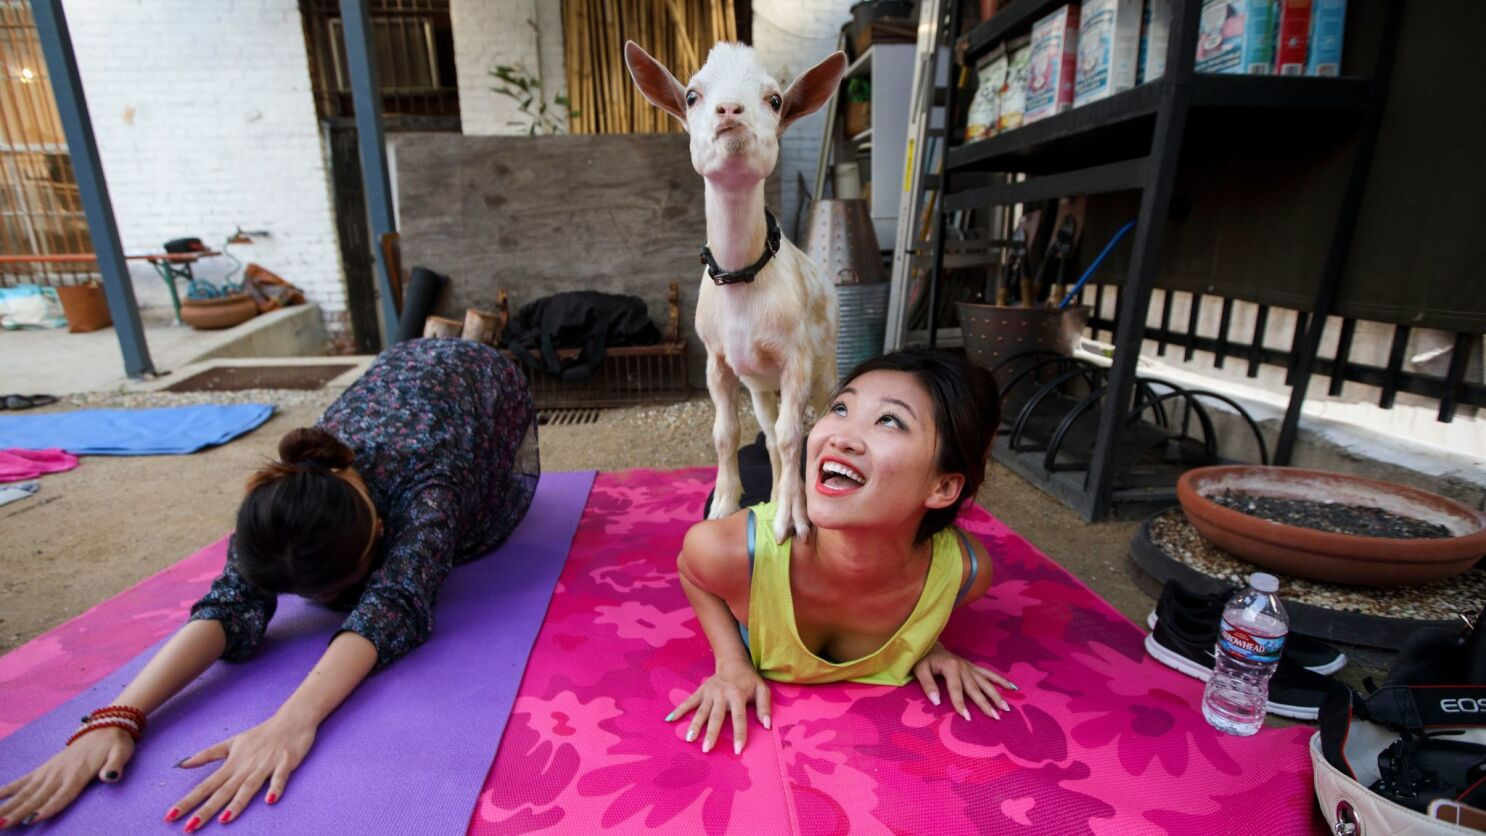 In Goat Yoga The Point Isn T To Sweat It S To Have A Baby Goat Climb On Your Shoulders During Your Plank Los Angeles Times